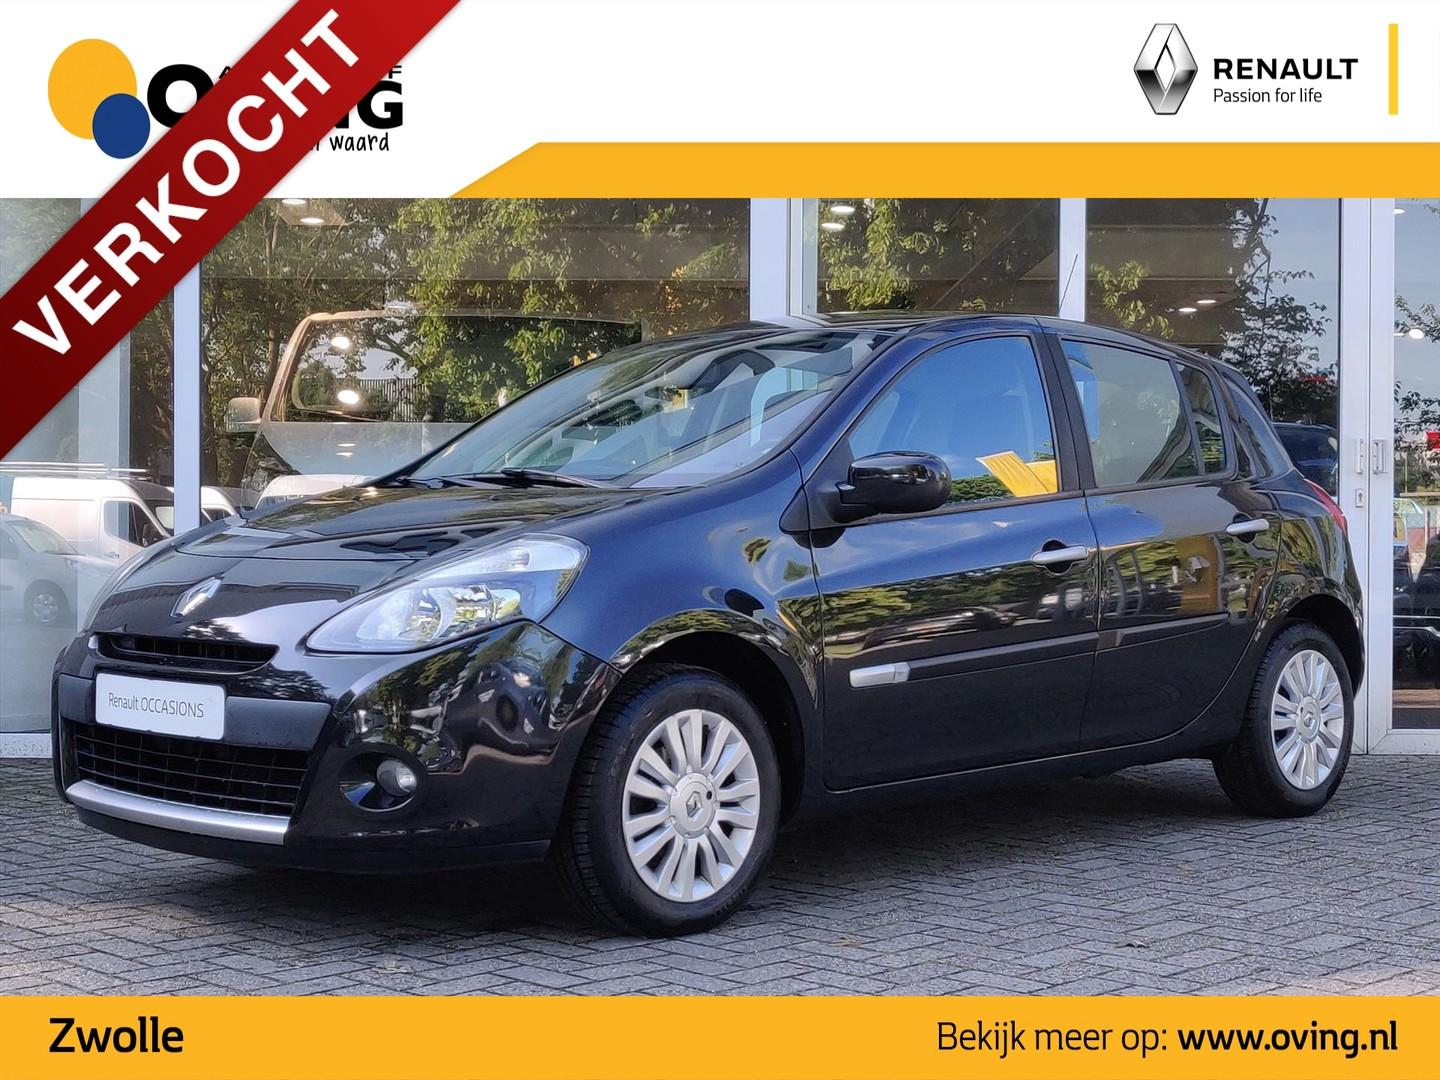 Renault Clio 1.2 16v collection 5drs